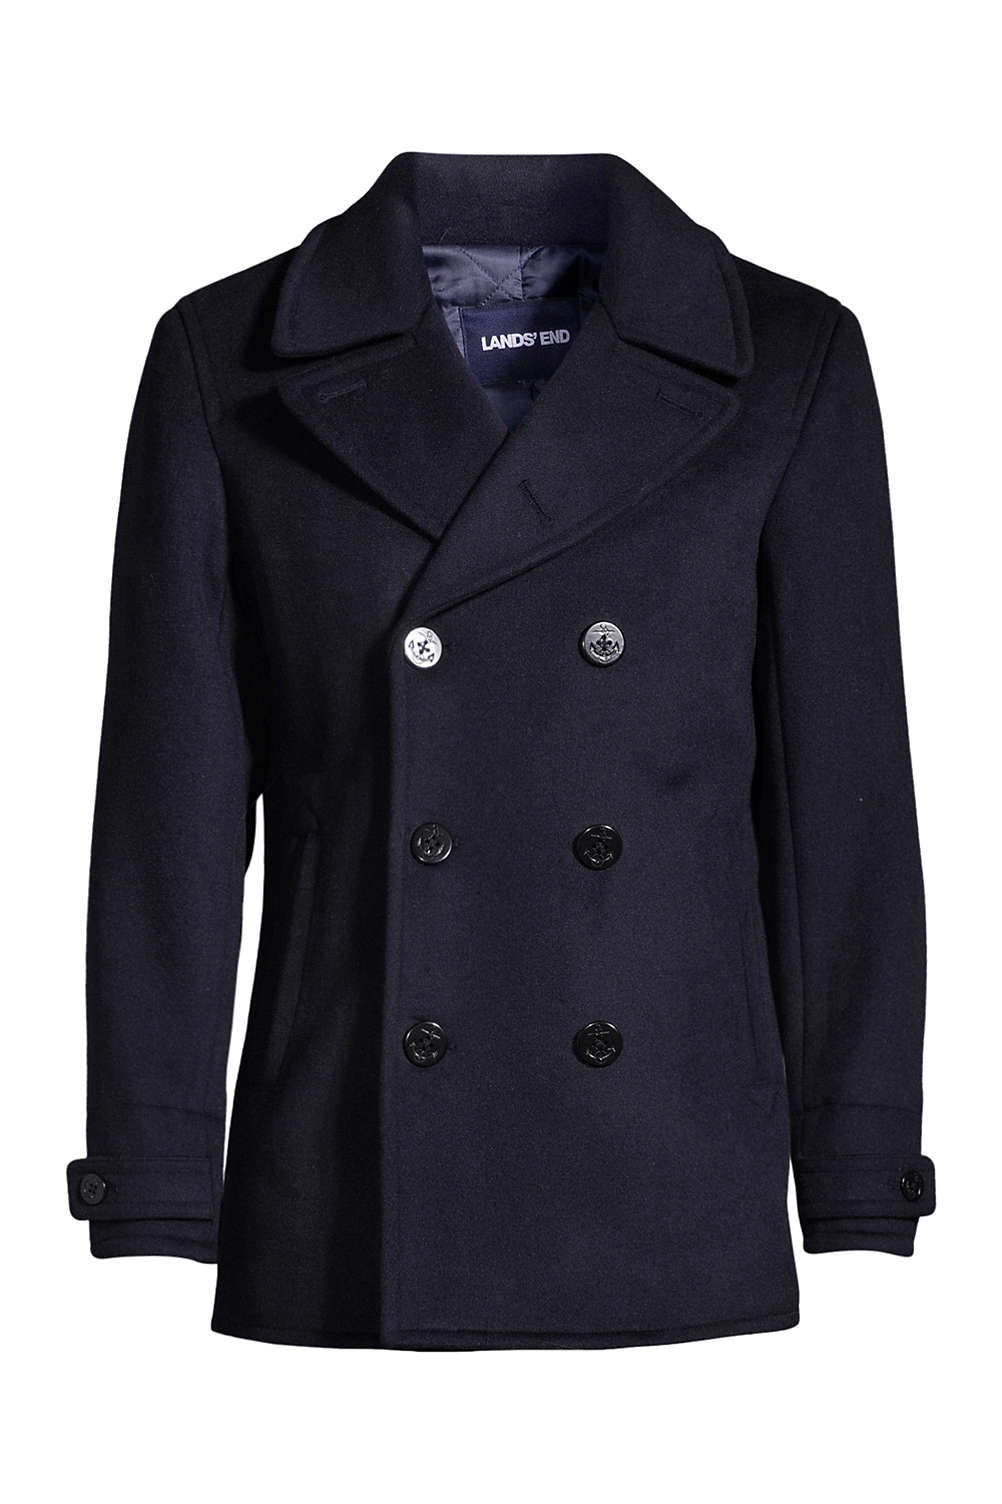 76f3865cc38 Men s Wool Peacoat from Lands  End